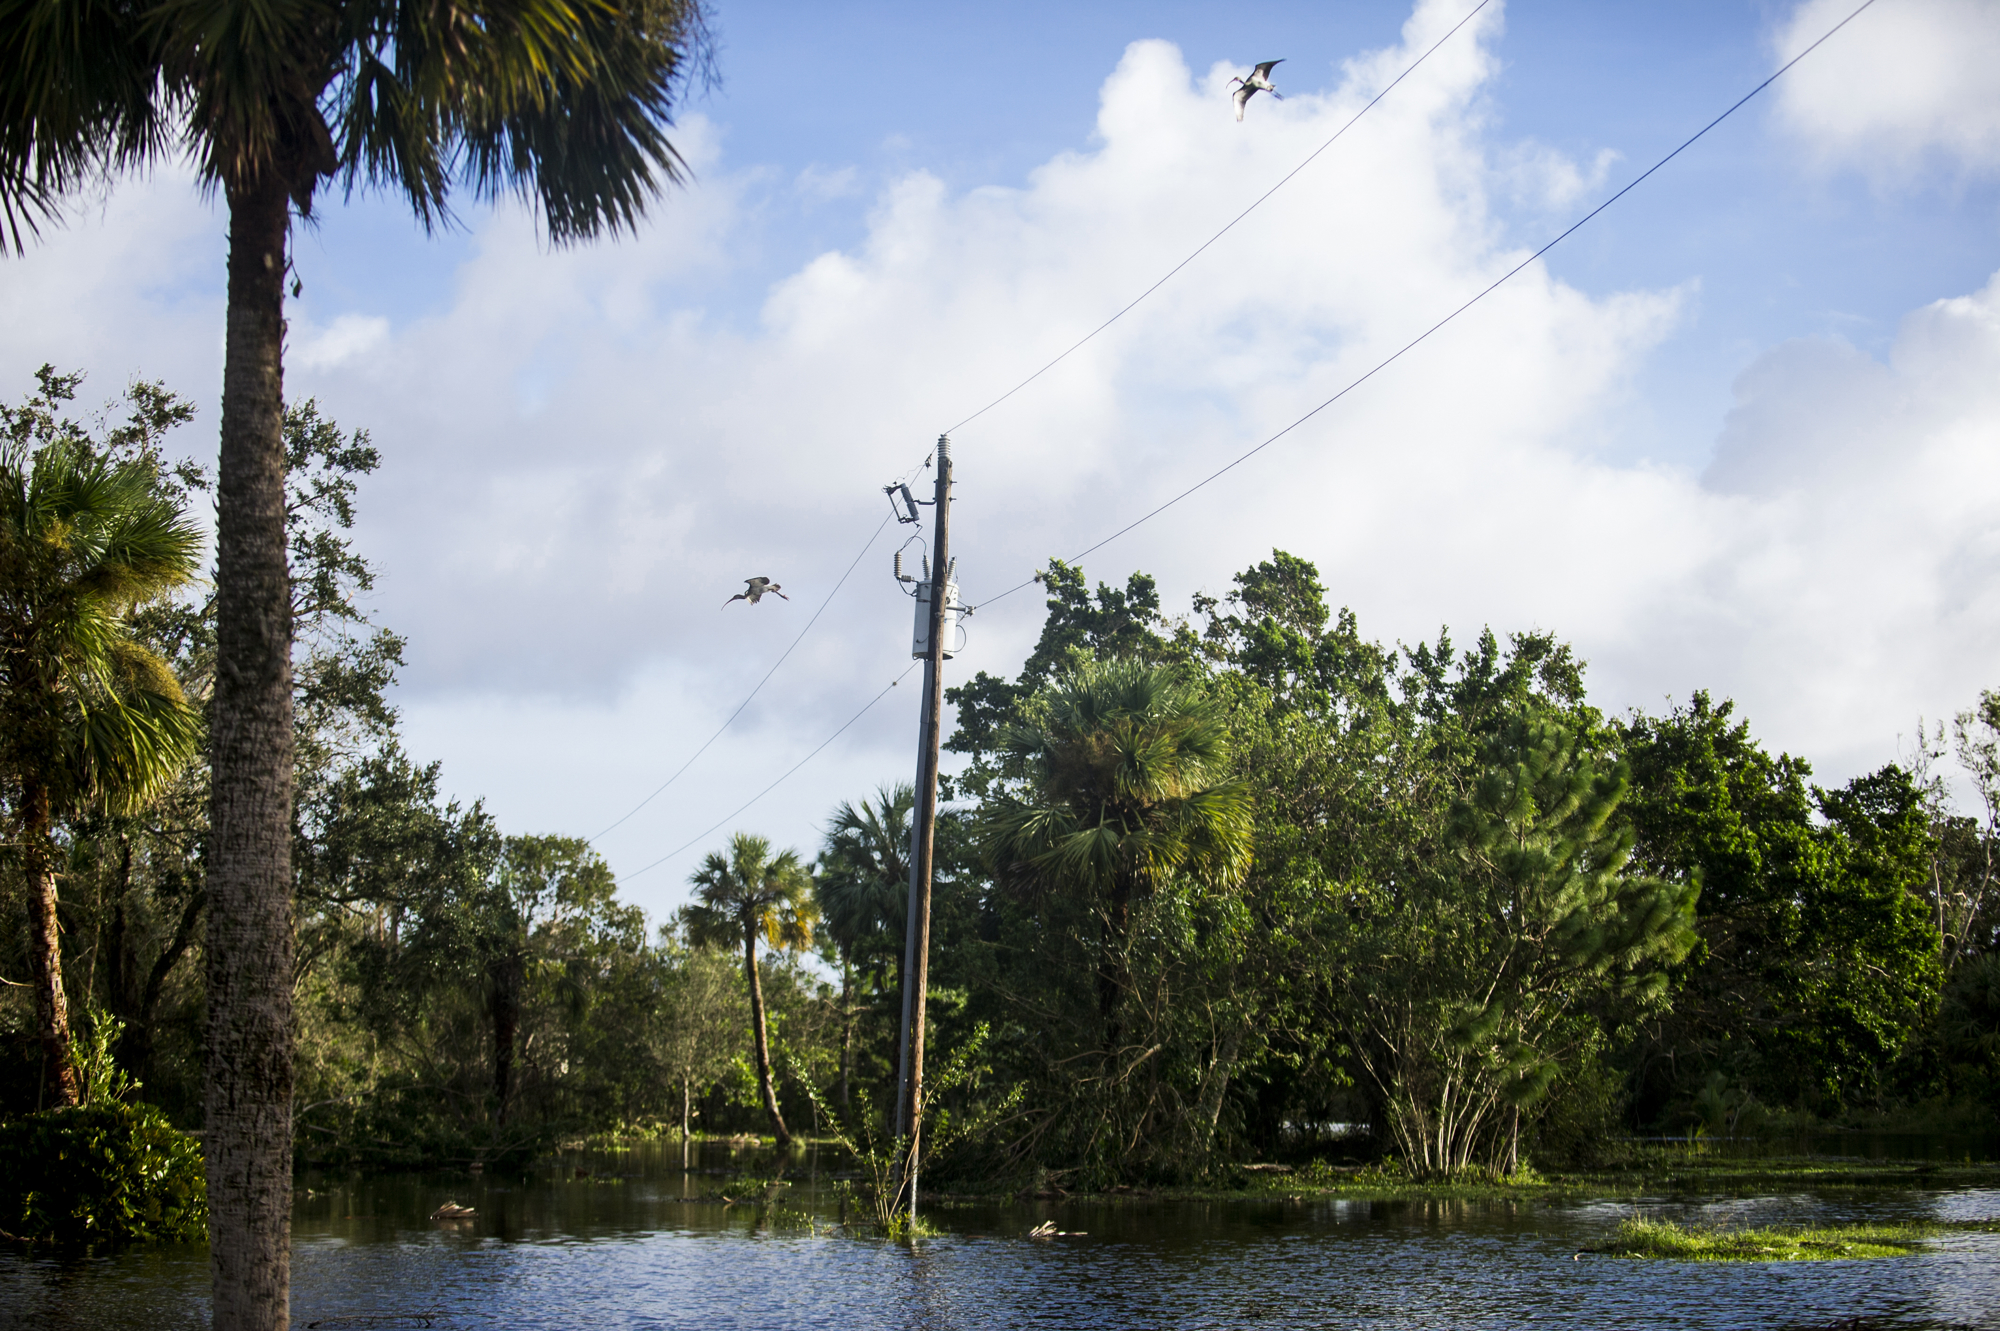 Birds fly over a field flooded by Hurricane Irma.